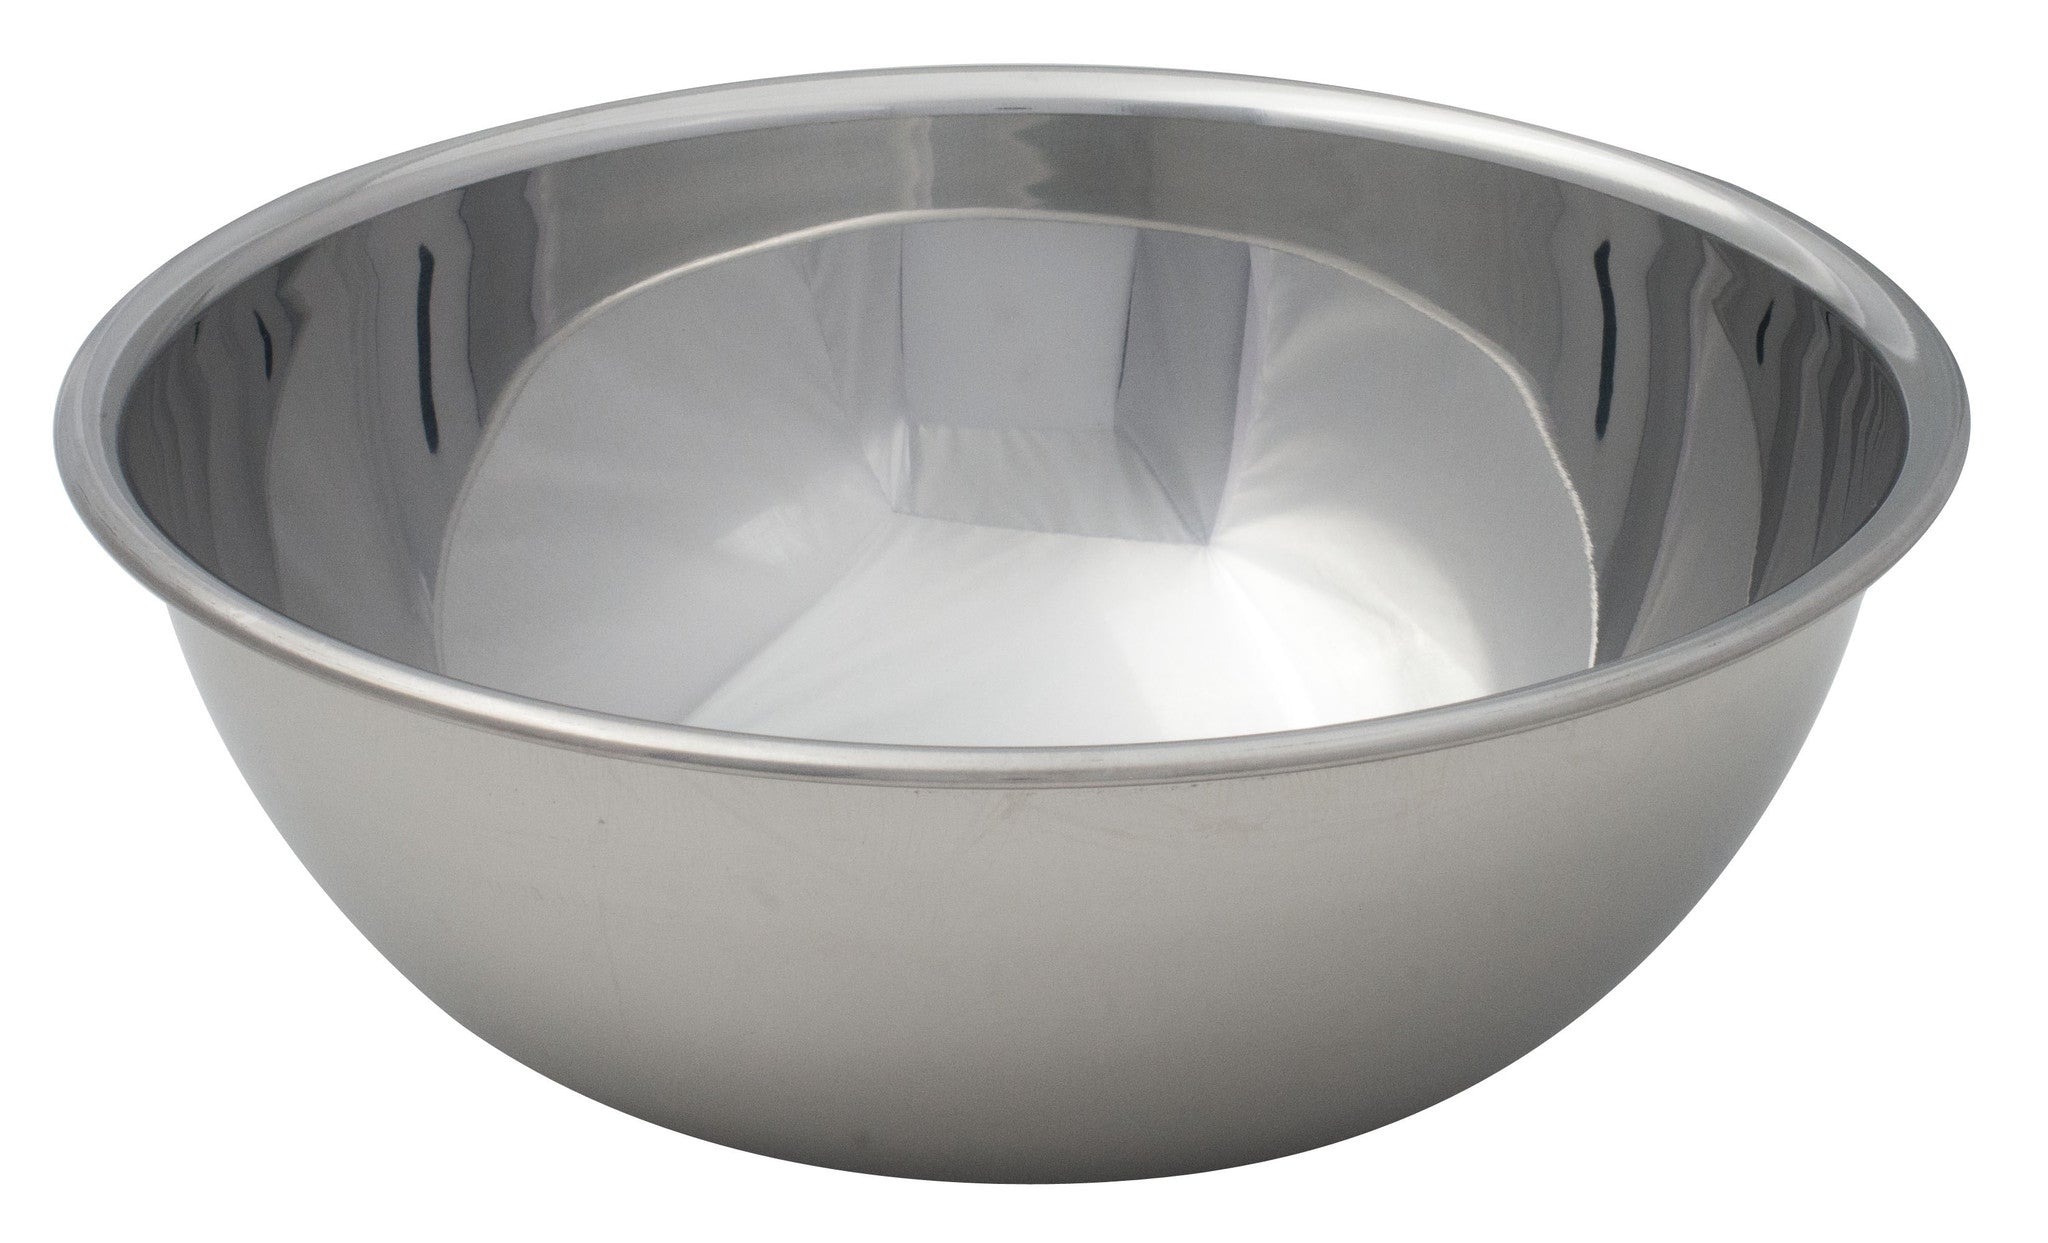 Kitchen Tools And Gadgets Stainless Steel Mixing Bowl Singapore Pantry Pursuits